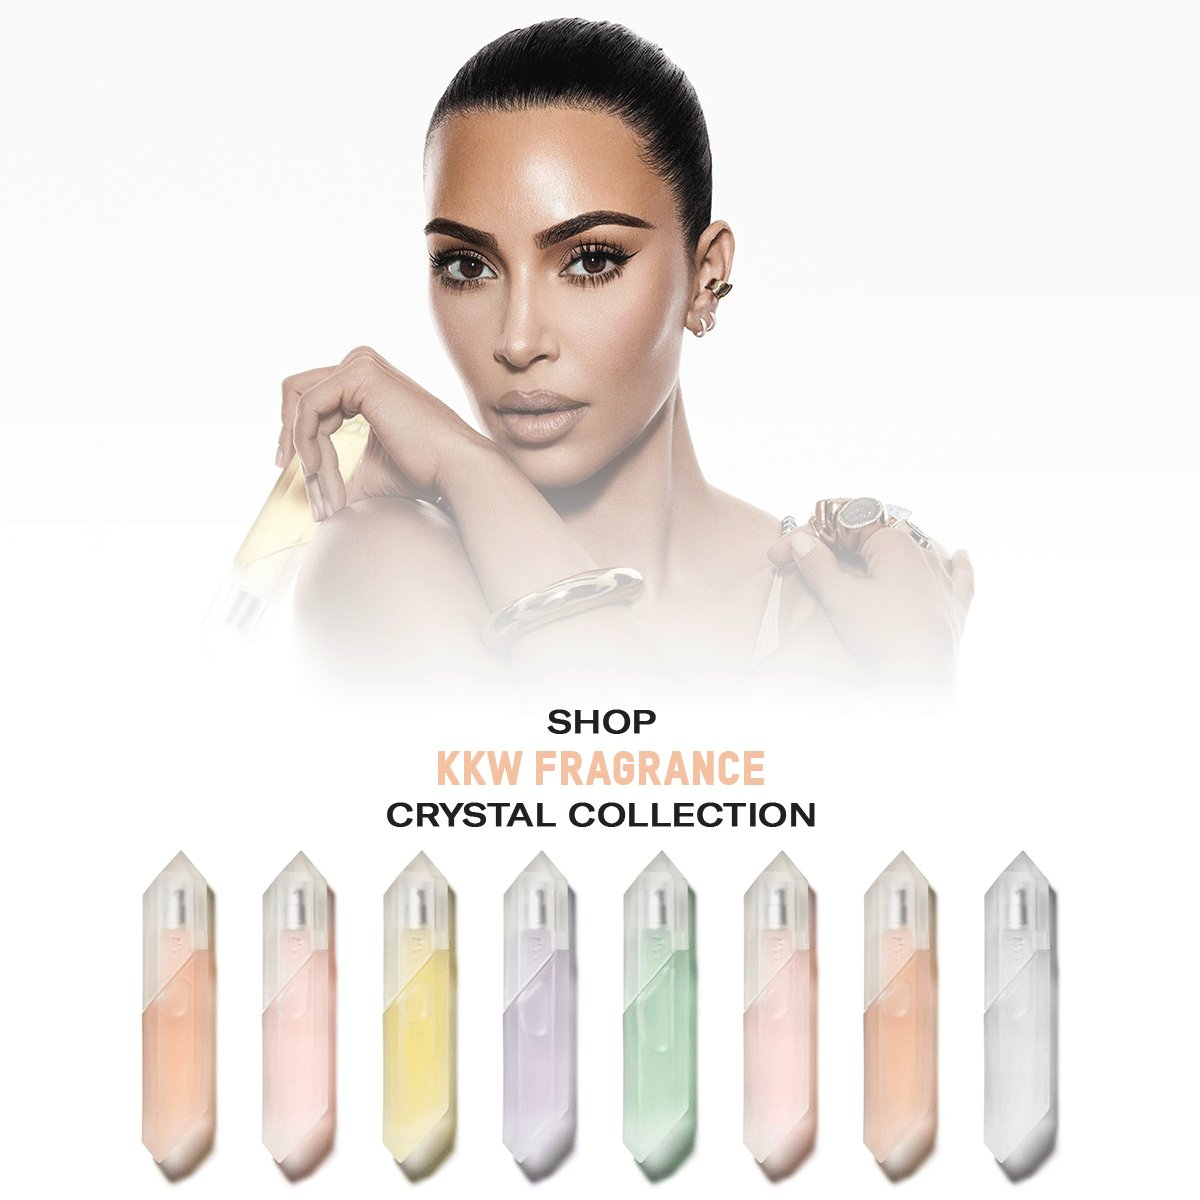 Replying to @KKWMAFIA: Shop @KKWFRAGRANCE Crystal Collection now only at